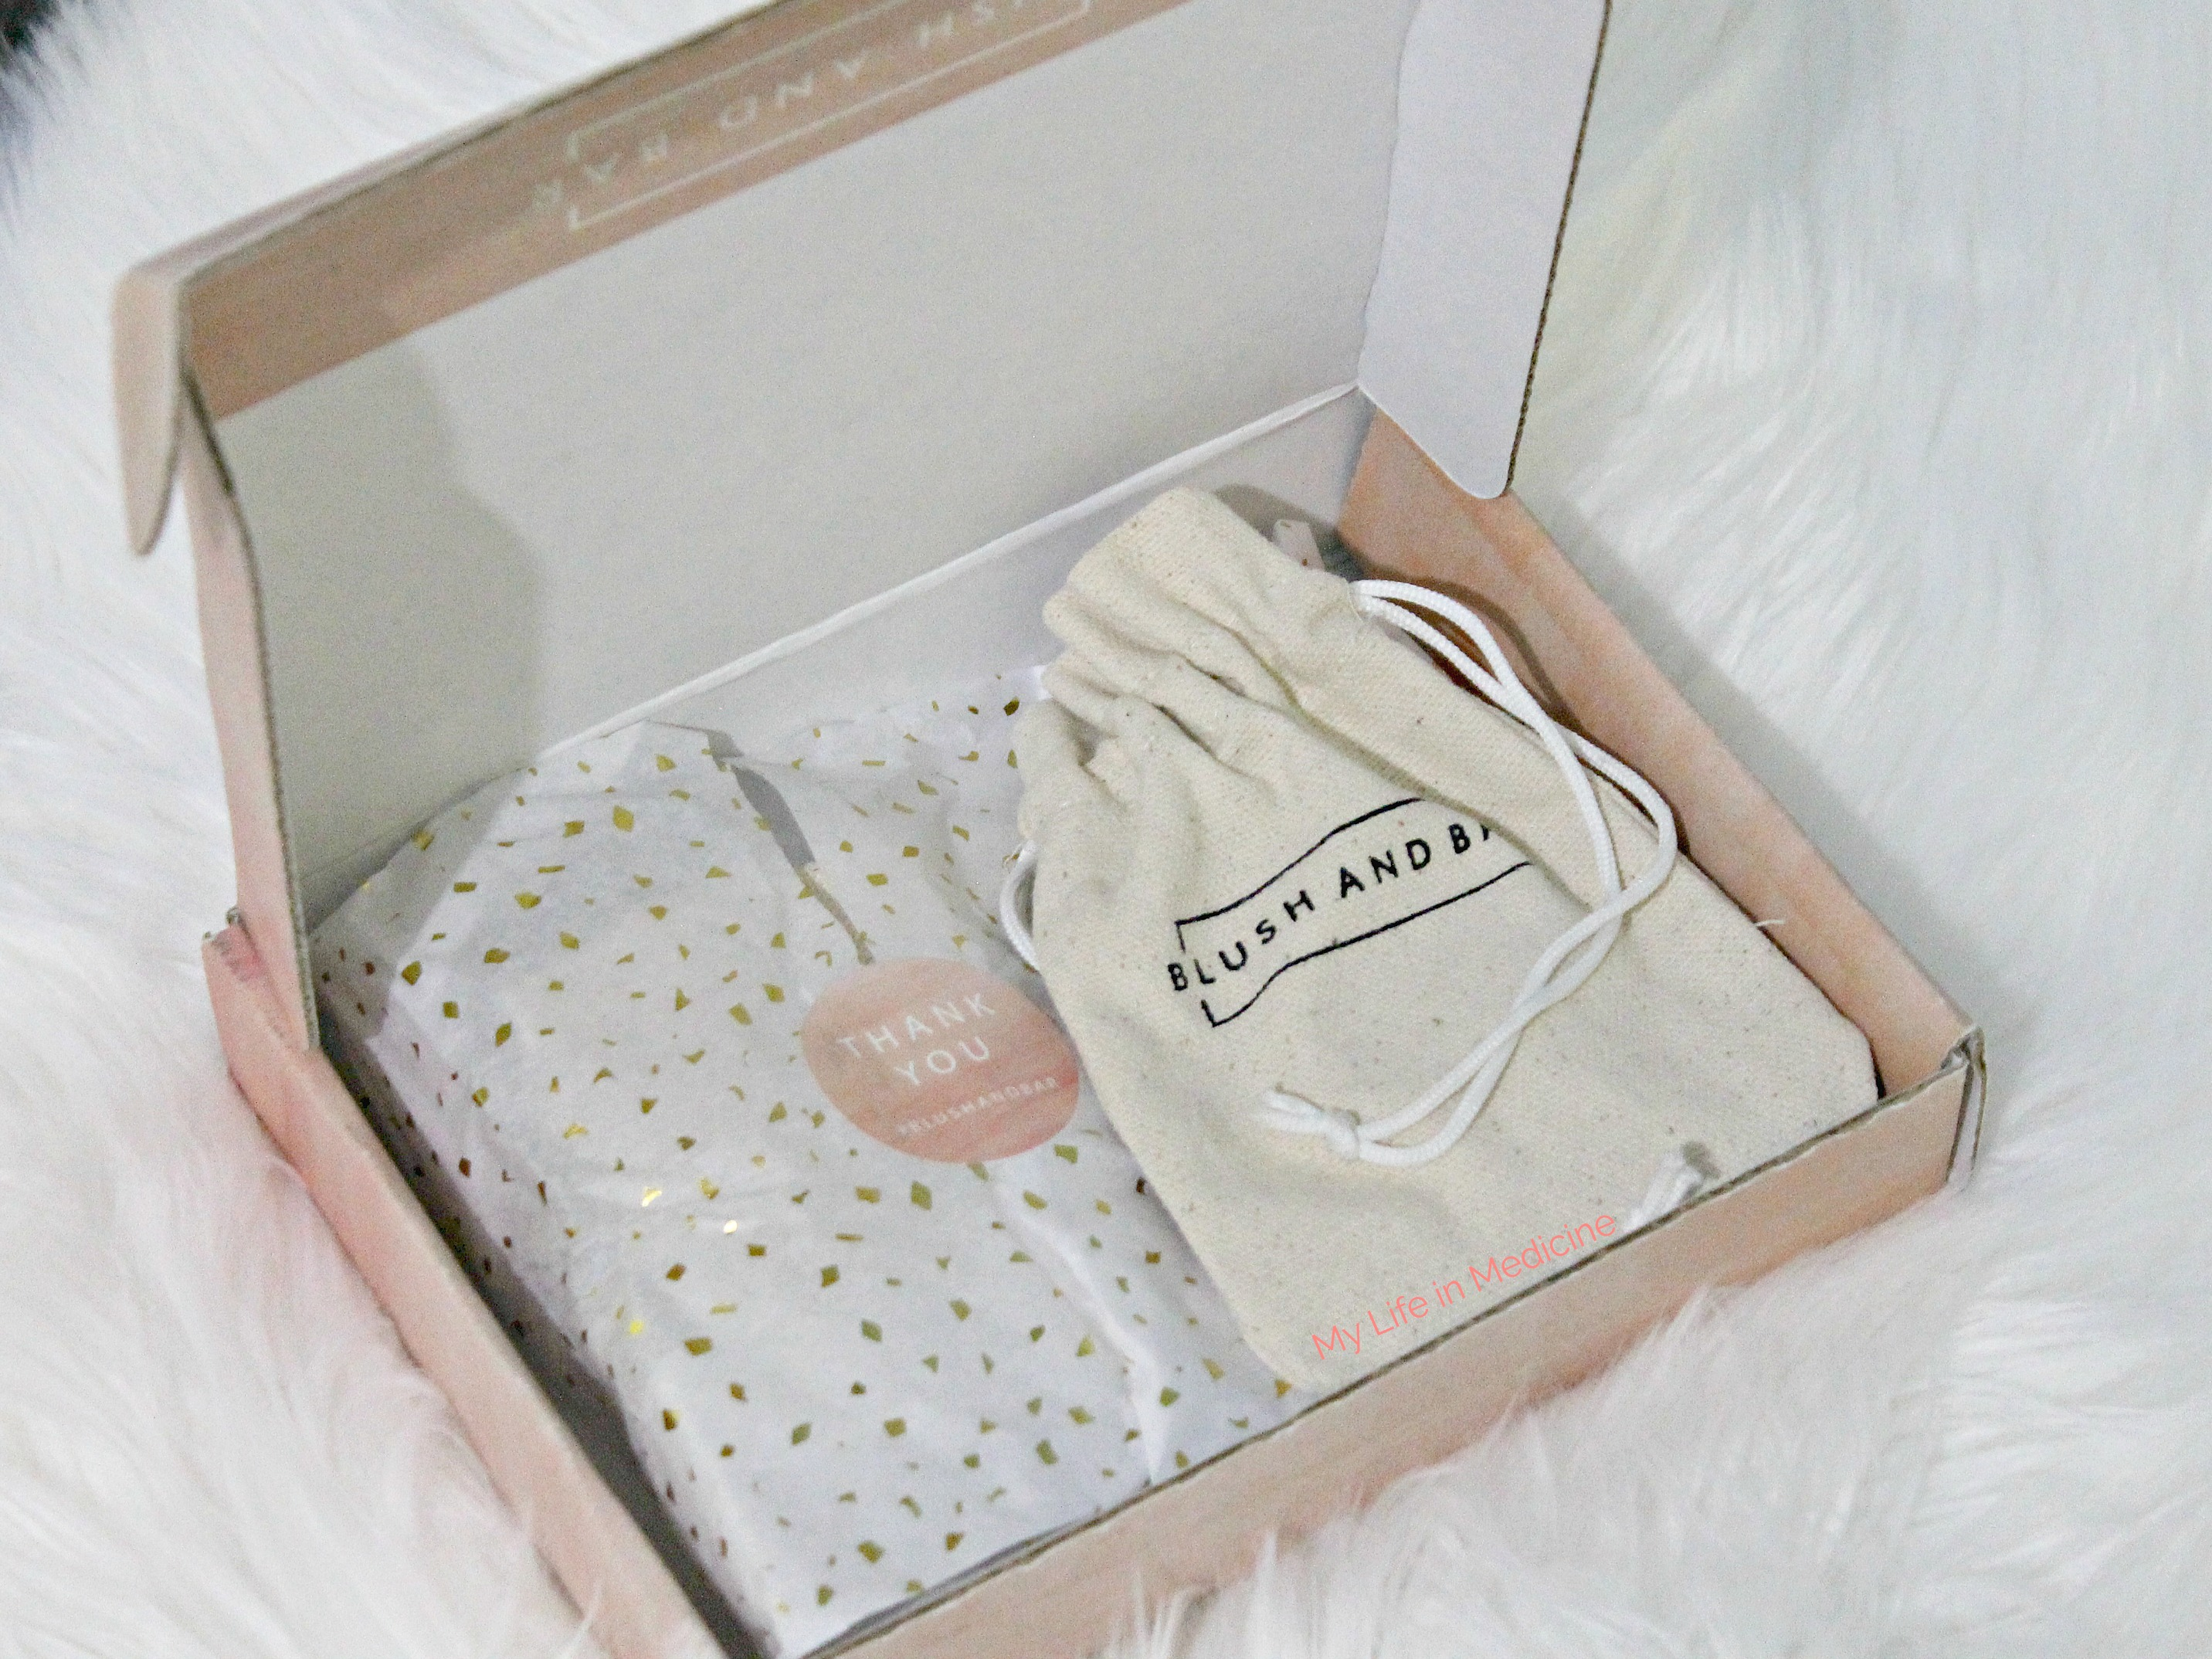 Blush and Bar Subscription Box